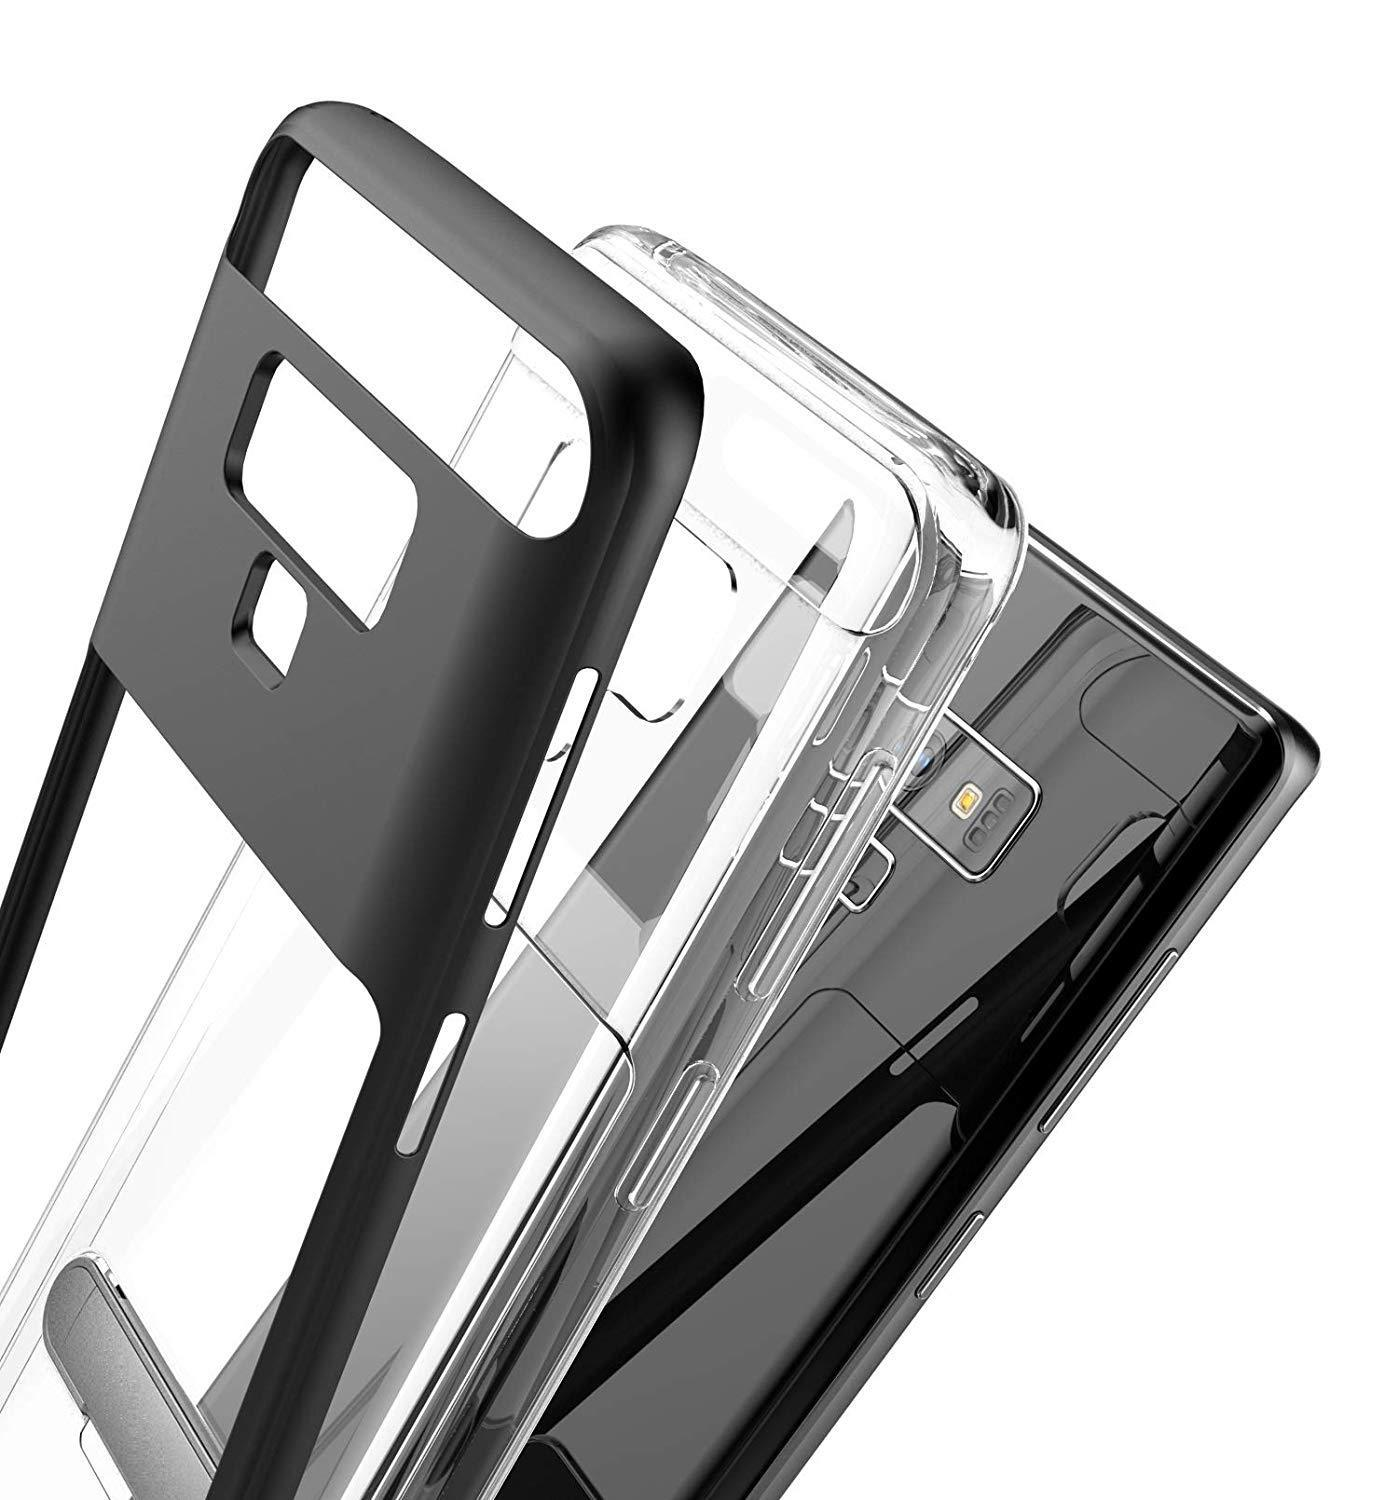 Samsung Galaxy Note 9 / N960 Slim Hybrid Transparent Bumper Shockproof Case with Kickstand by Modes